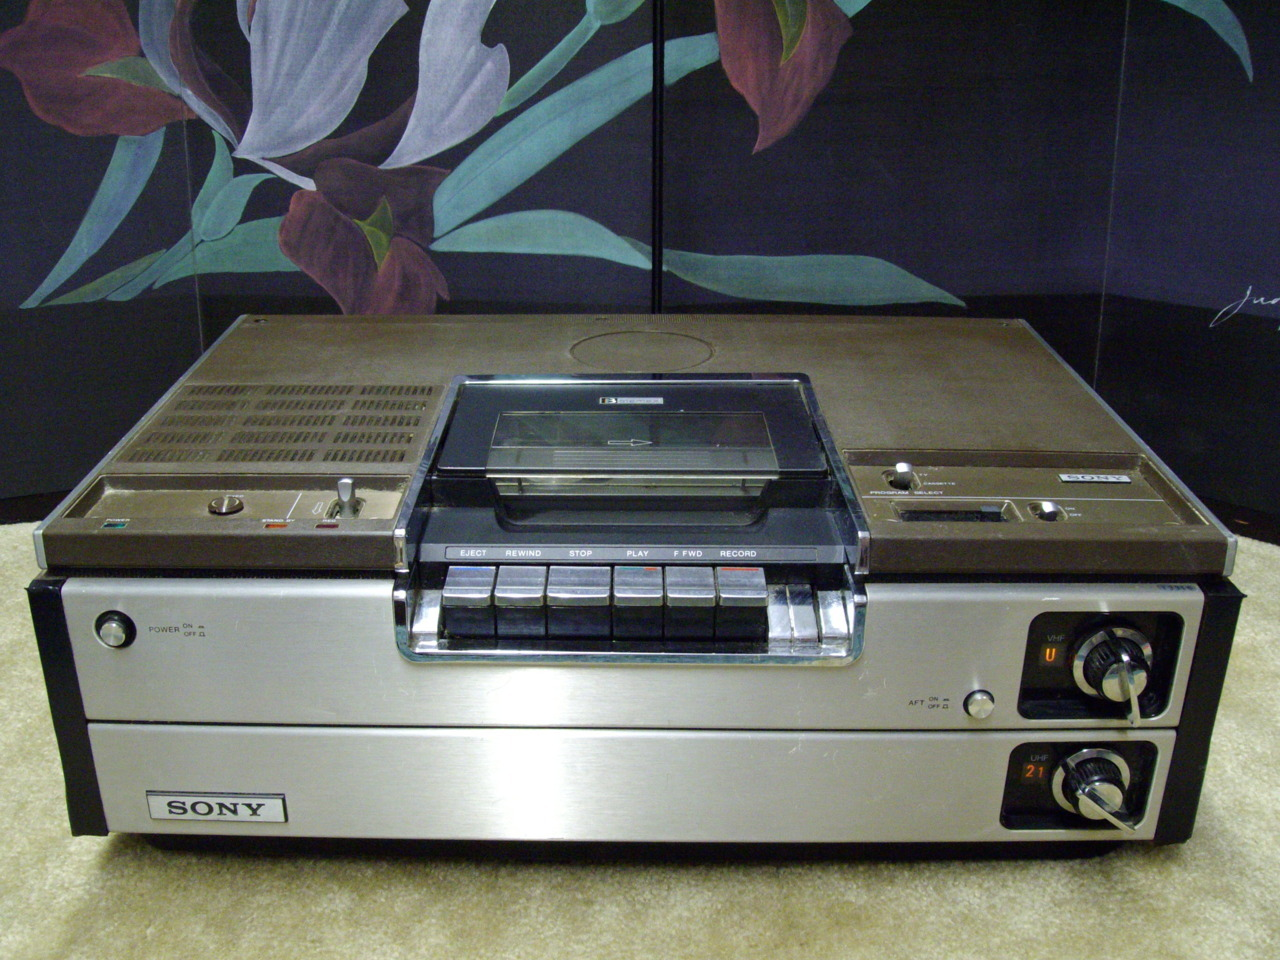 SONY BetaMax - Model SL 7200 1977 As a kid we had these before VHS they had remotes wired to the unit and were better quality than VHS but the record time was quite low. I still have my red BetaMax tape which I used to tape Saturday morning cartoons.